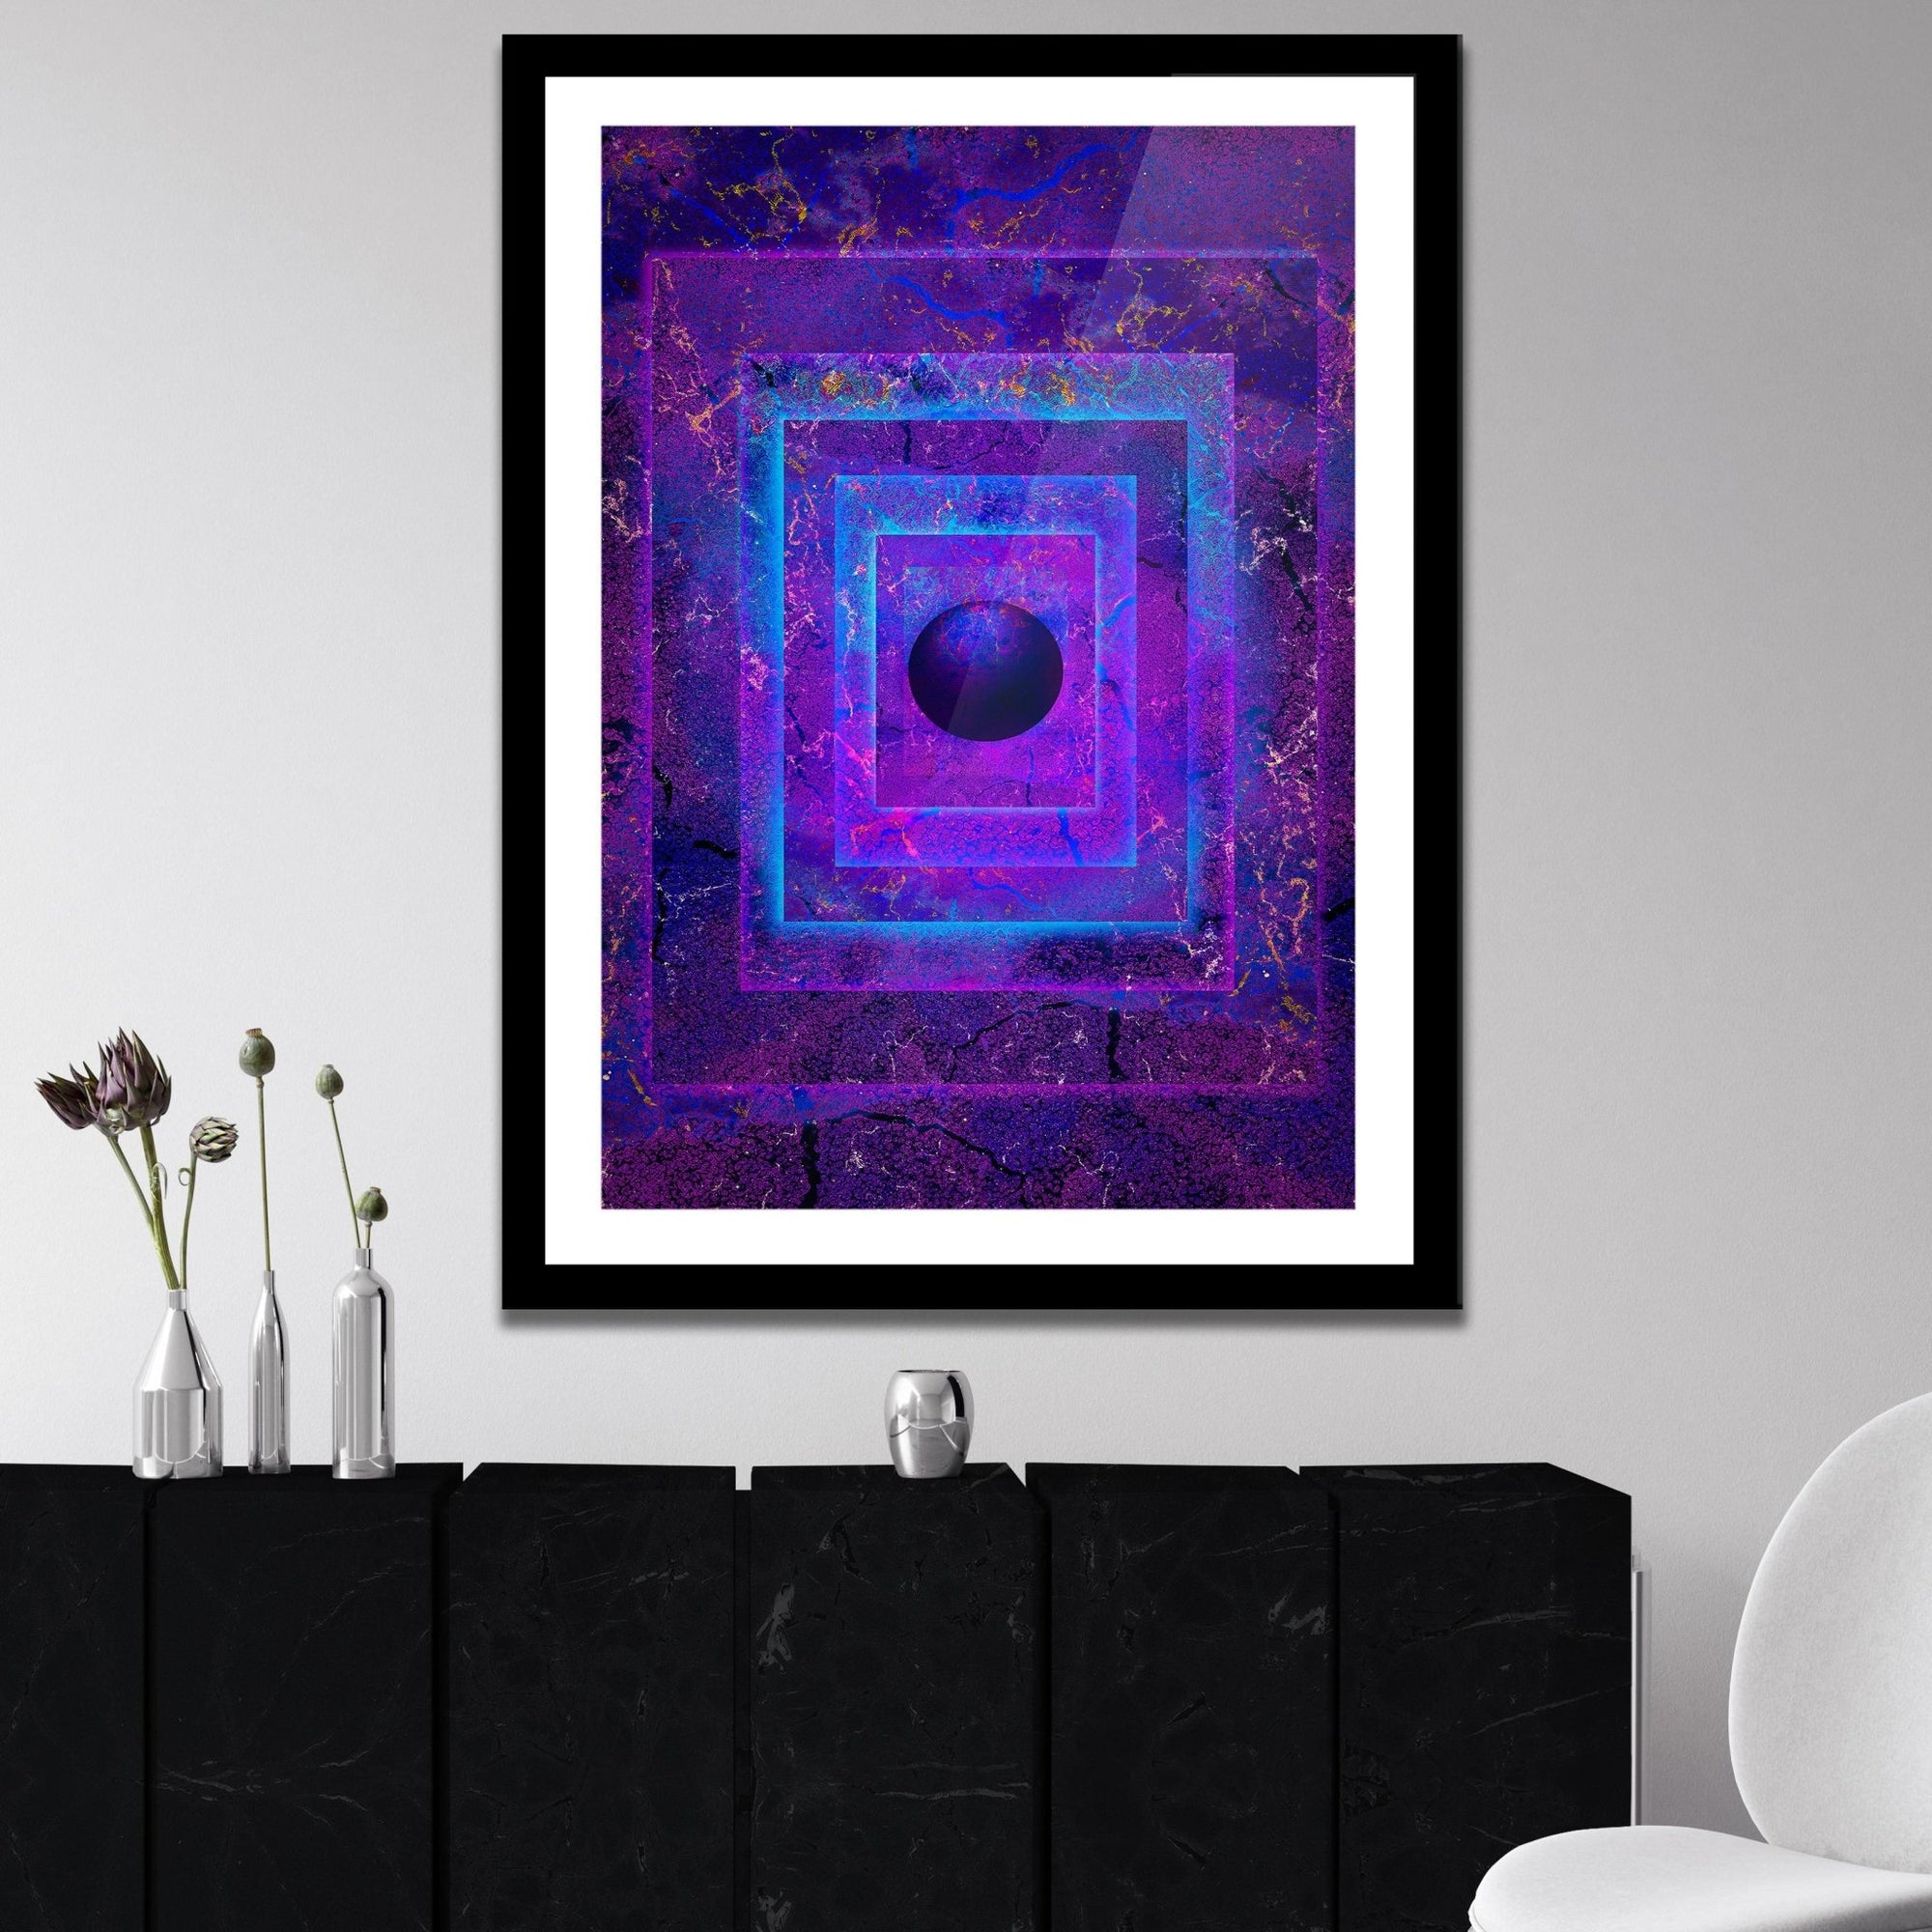 Mysterious Orb Semi-gloss Print - Thedopeart Prints